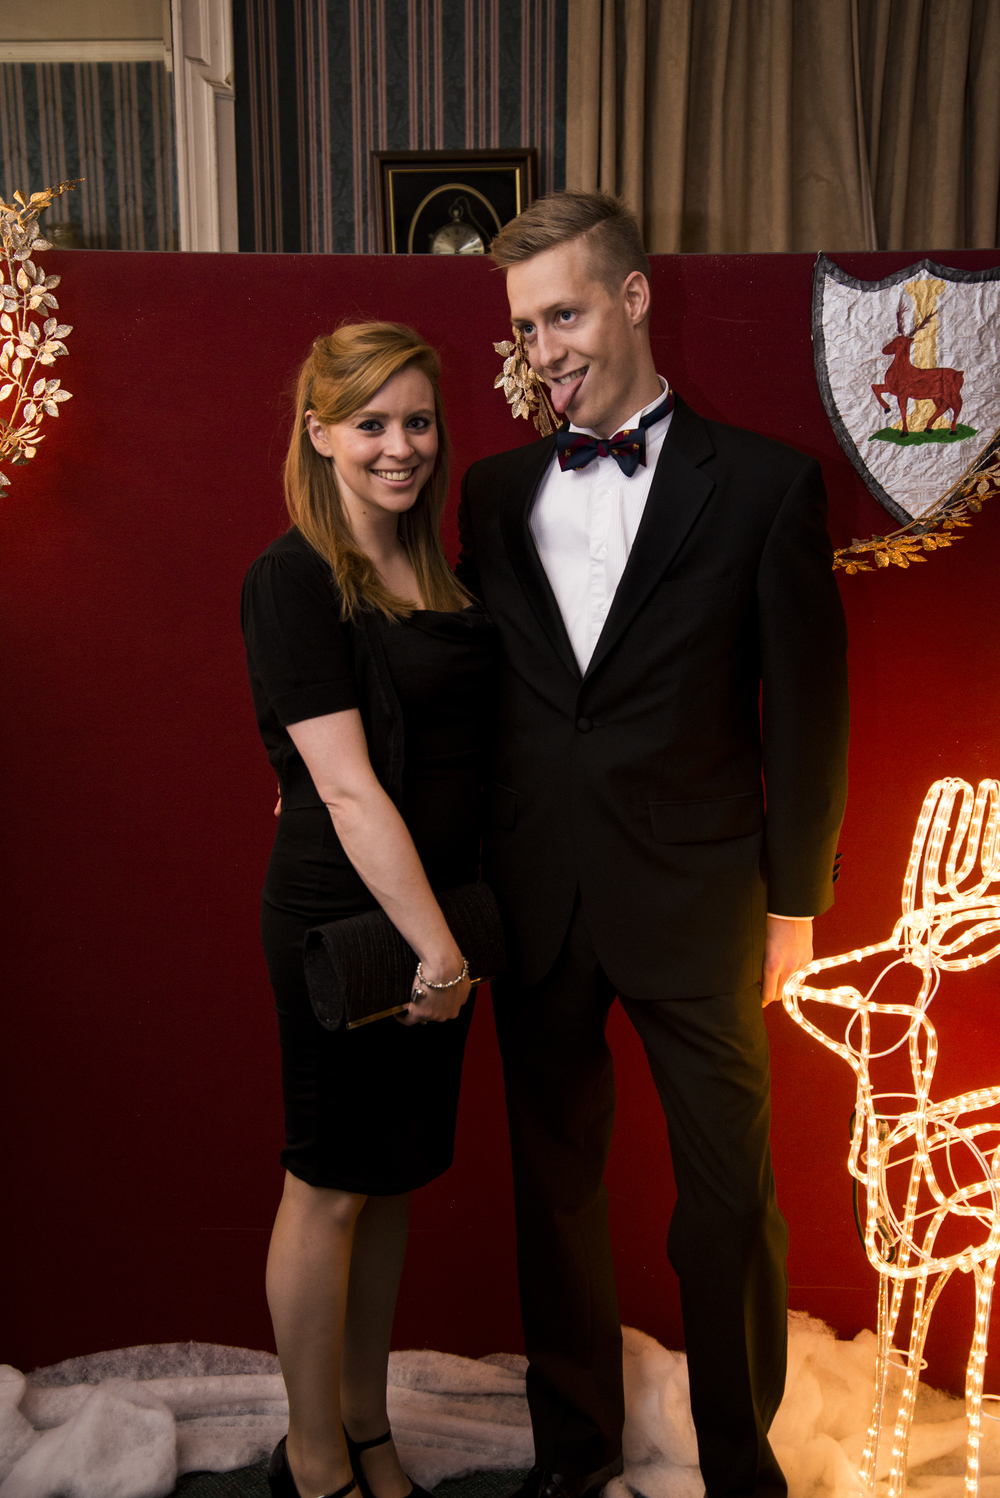 SAUS_winter_ball12121503.jpg